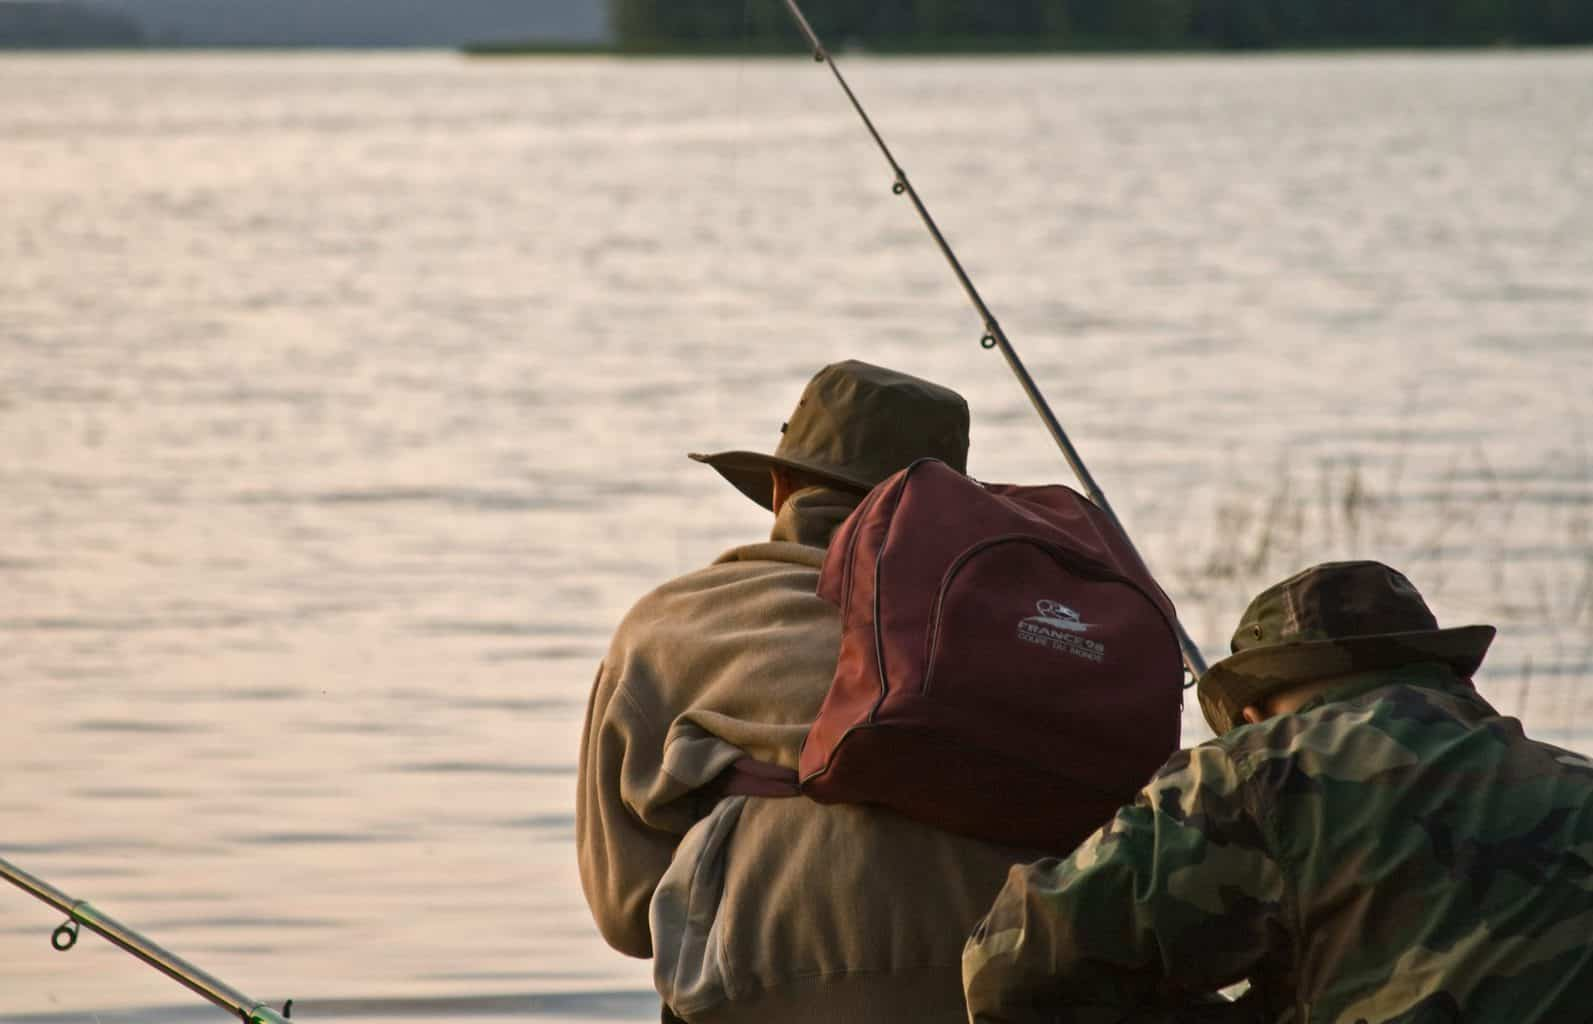 two fishermen waiting patiently for the best time to catch crappie